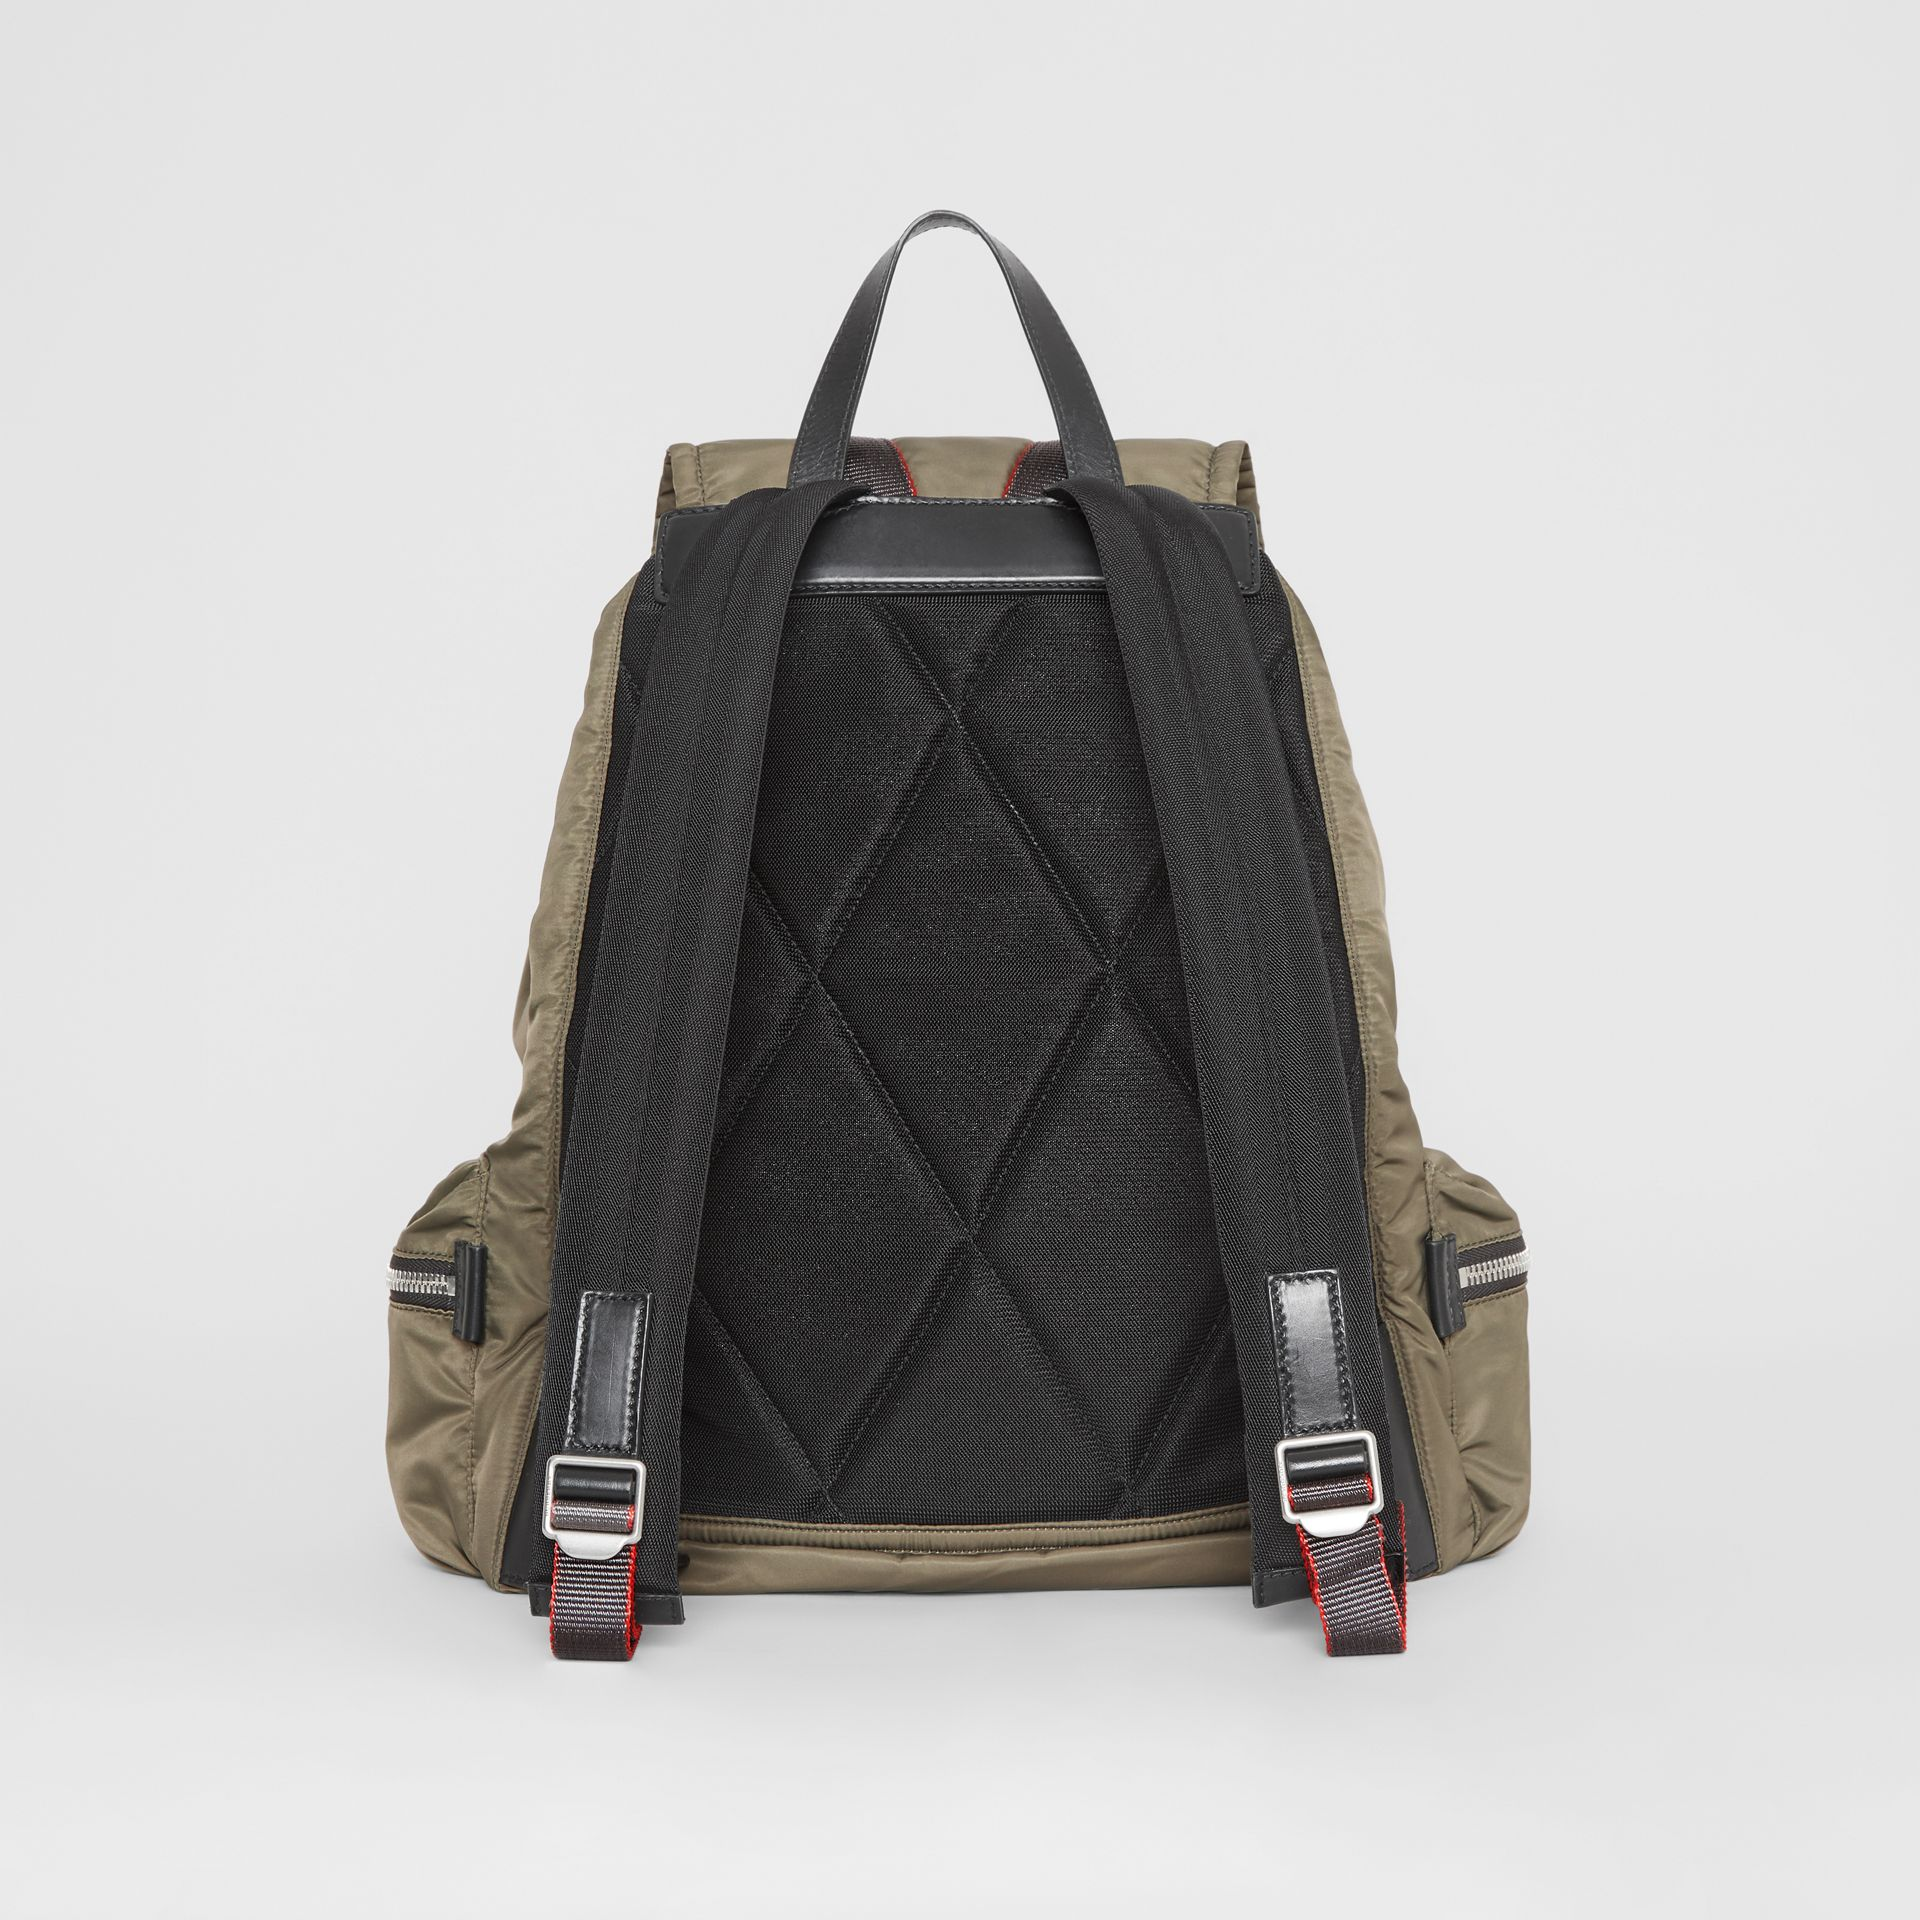 Sac The Rucksack extra-large en nylon façon aviateur (Céladon) - Homme | Burberry Canada - photo de la galerie 6